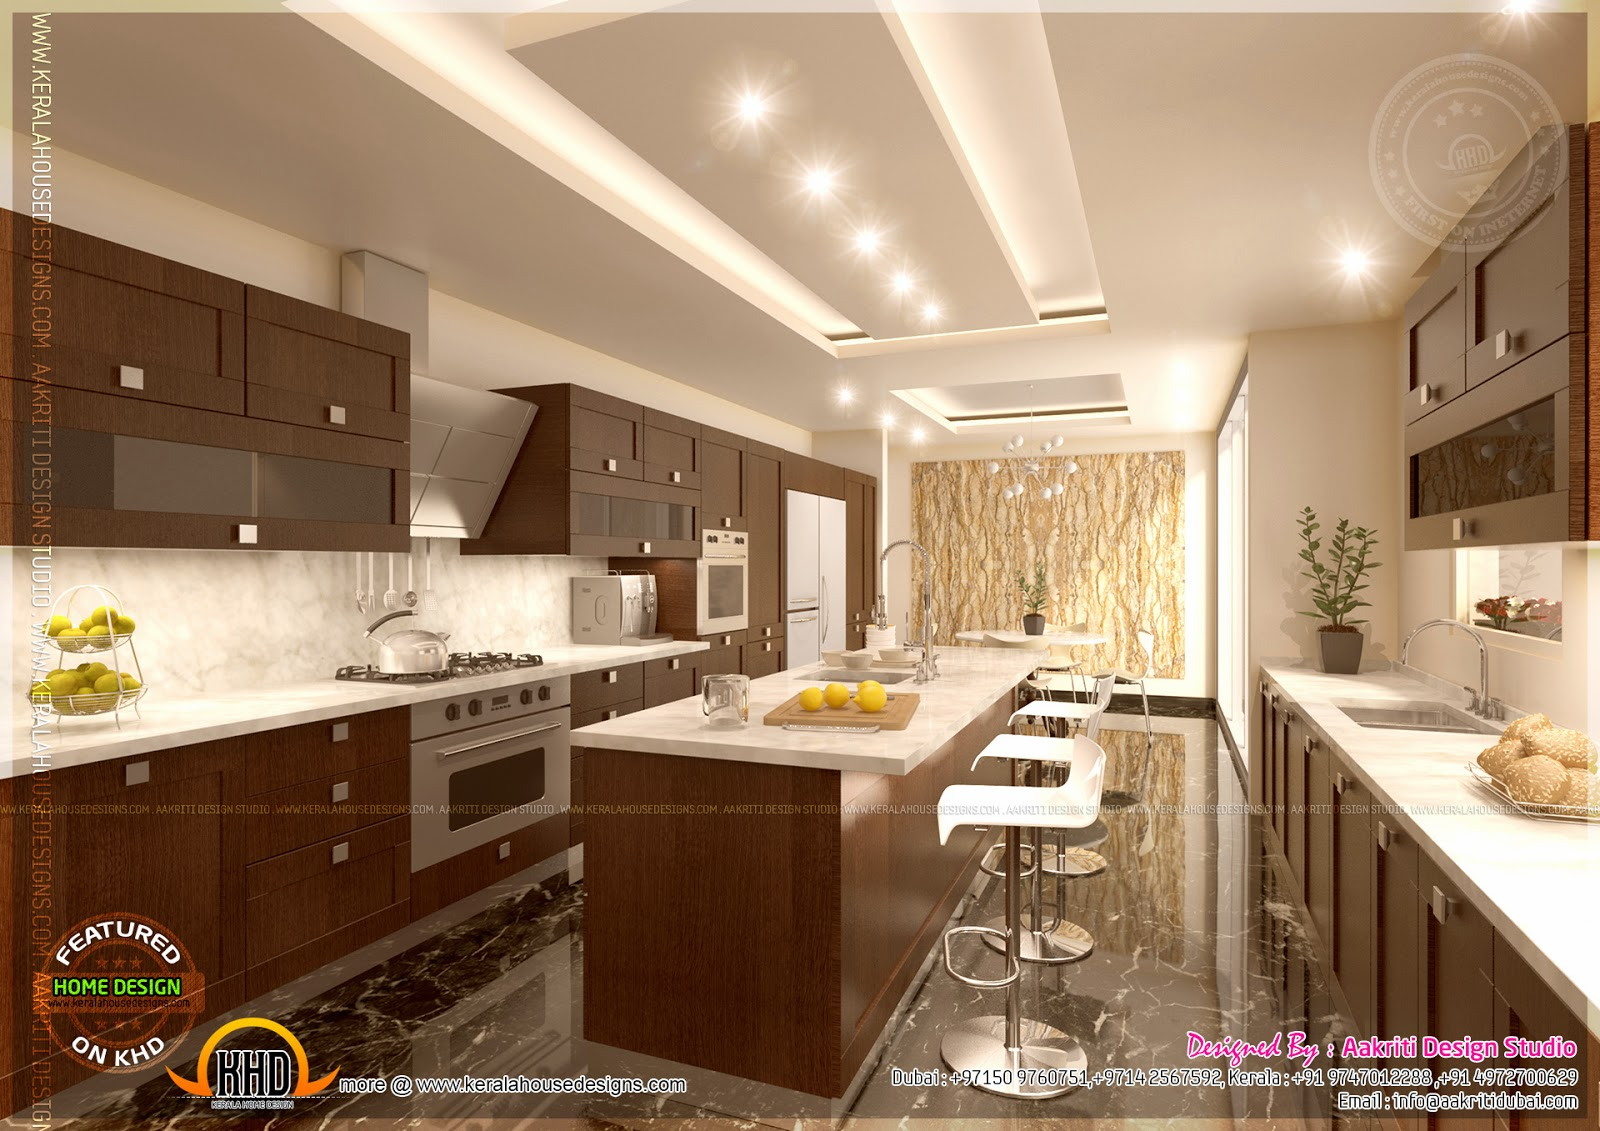 kerala style kitchen design picture. Kitchen design ideas designs by Aakriti Design Studio  Kerala home and